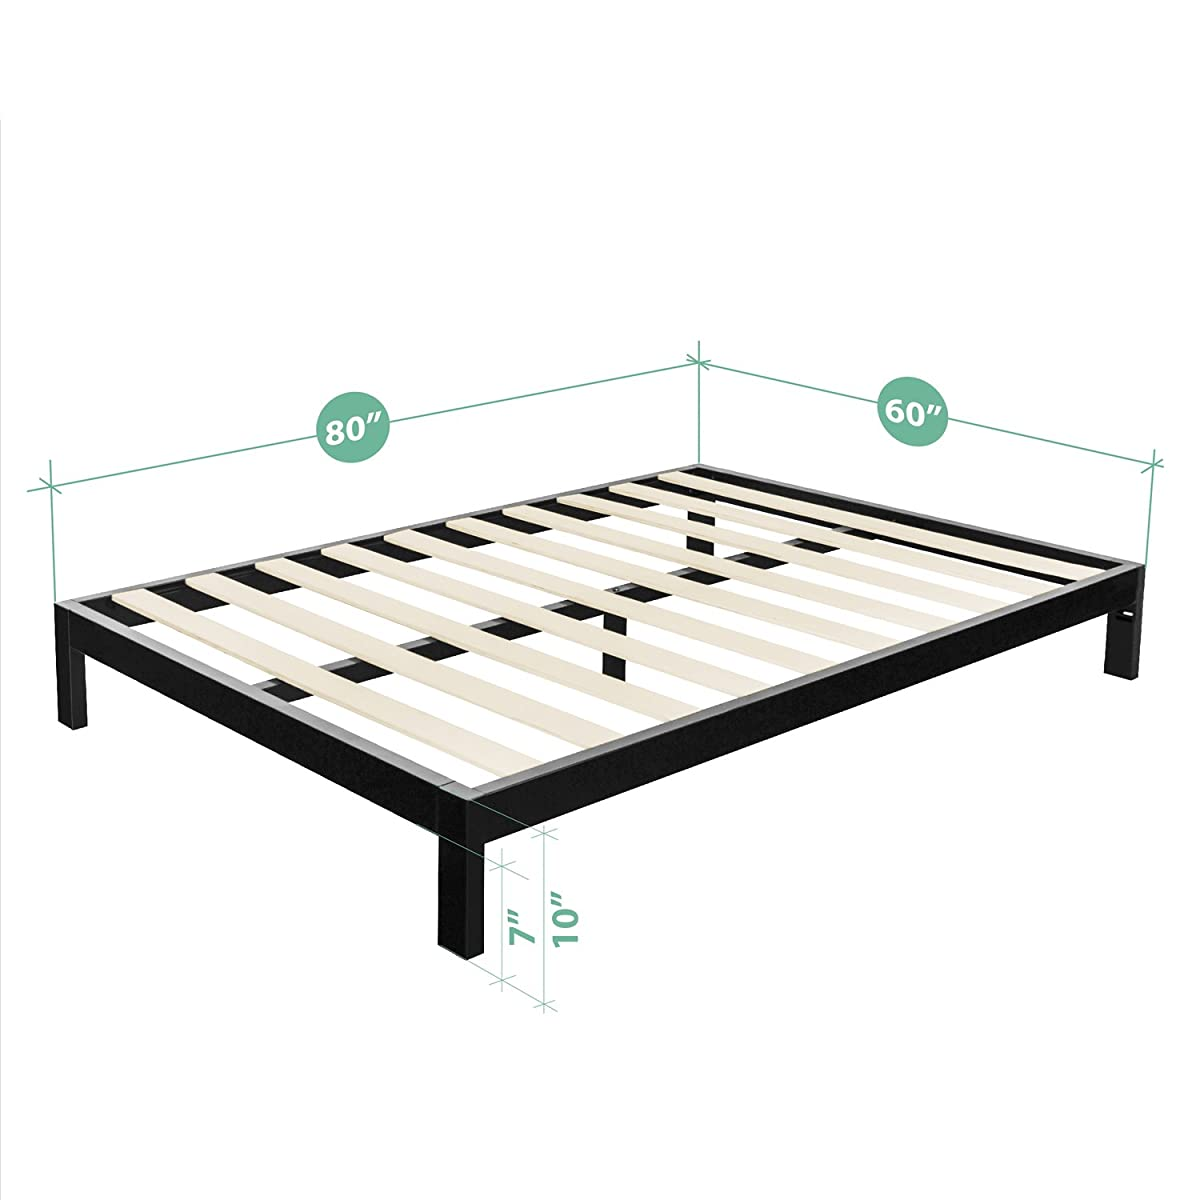 Zinus Modern Studio 10 Inch Platform 2000 Metal Bed Frame / Mattress Foundation / no Boxspring needed / Wooden Slat Support / Good Design Award Winner, Queen